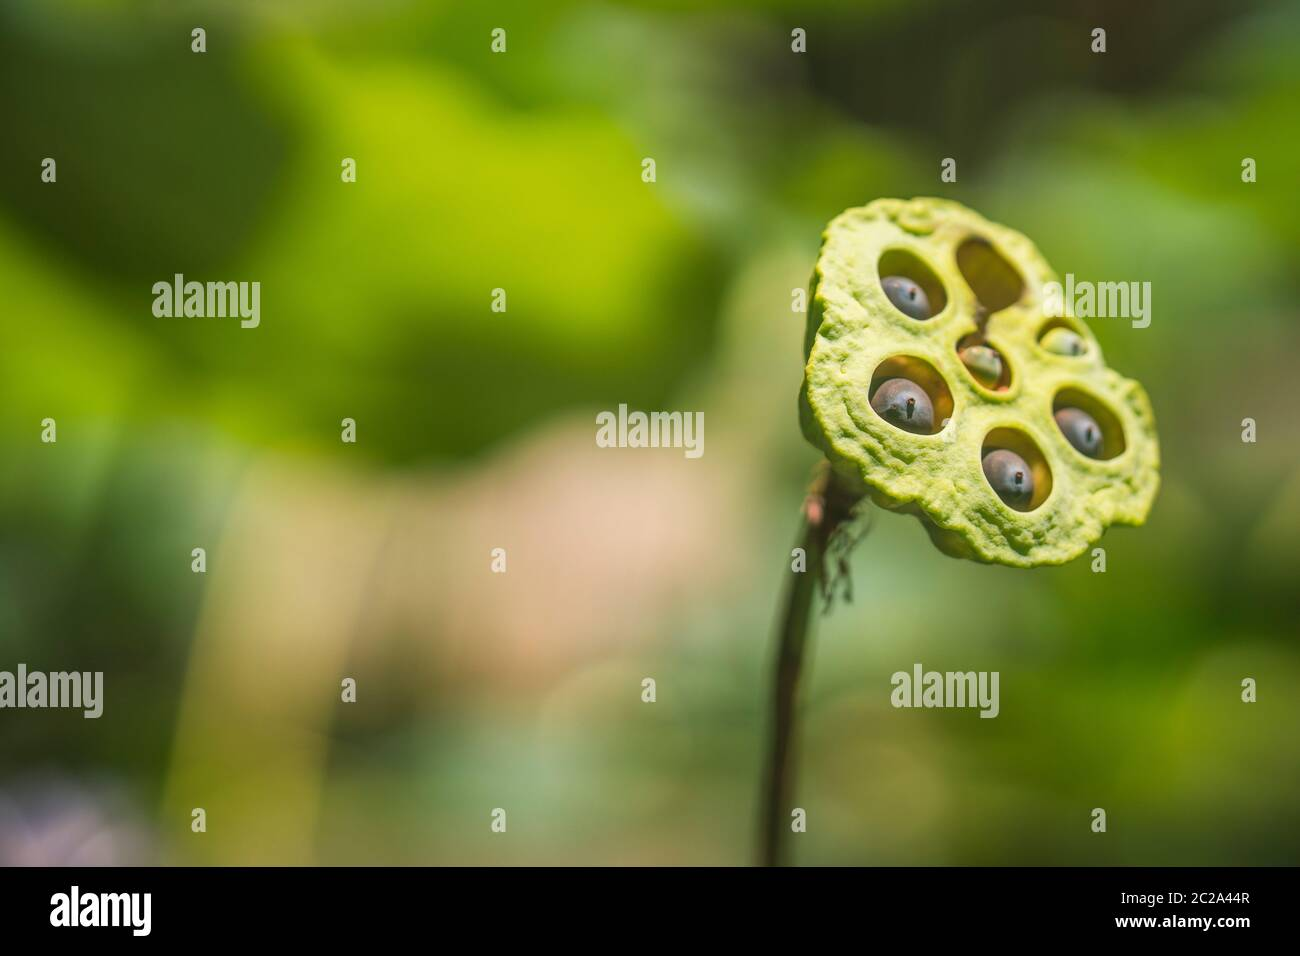 Lotus seed, lotus leaf and flower green background. Nature background Stock Photo